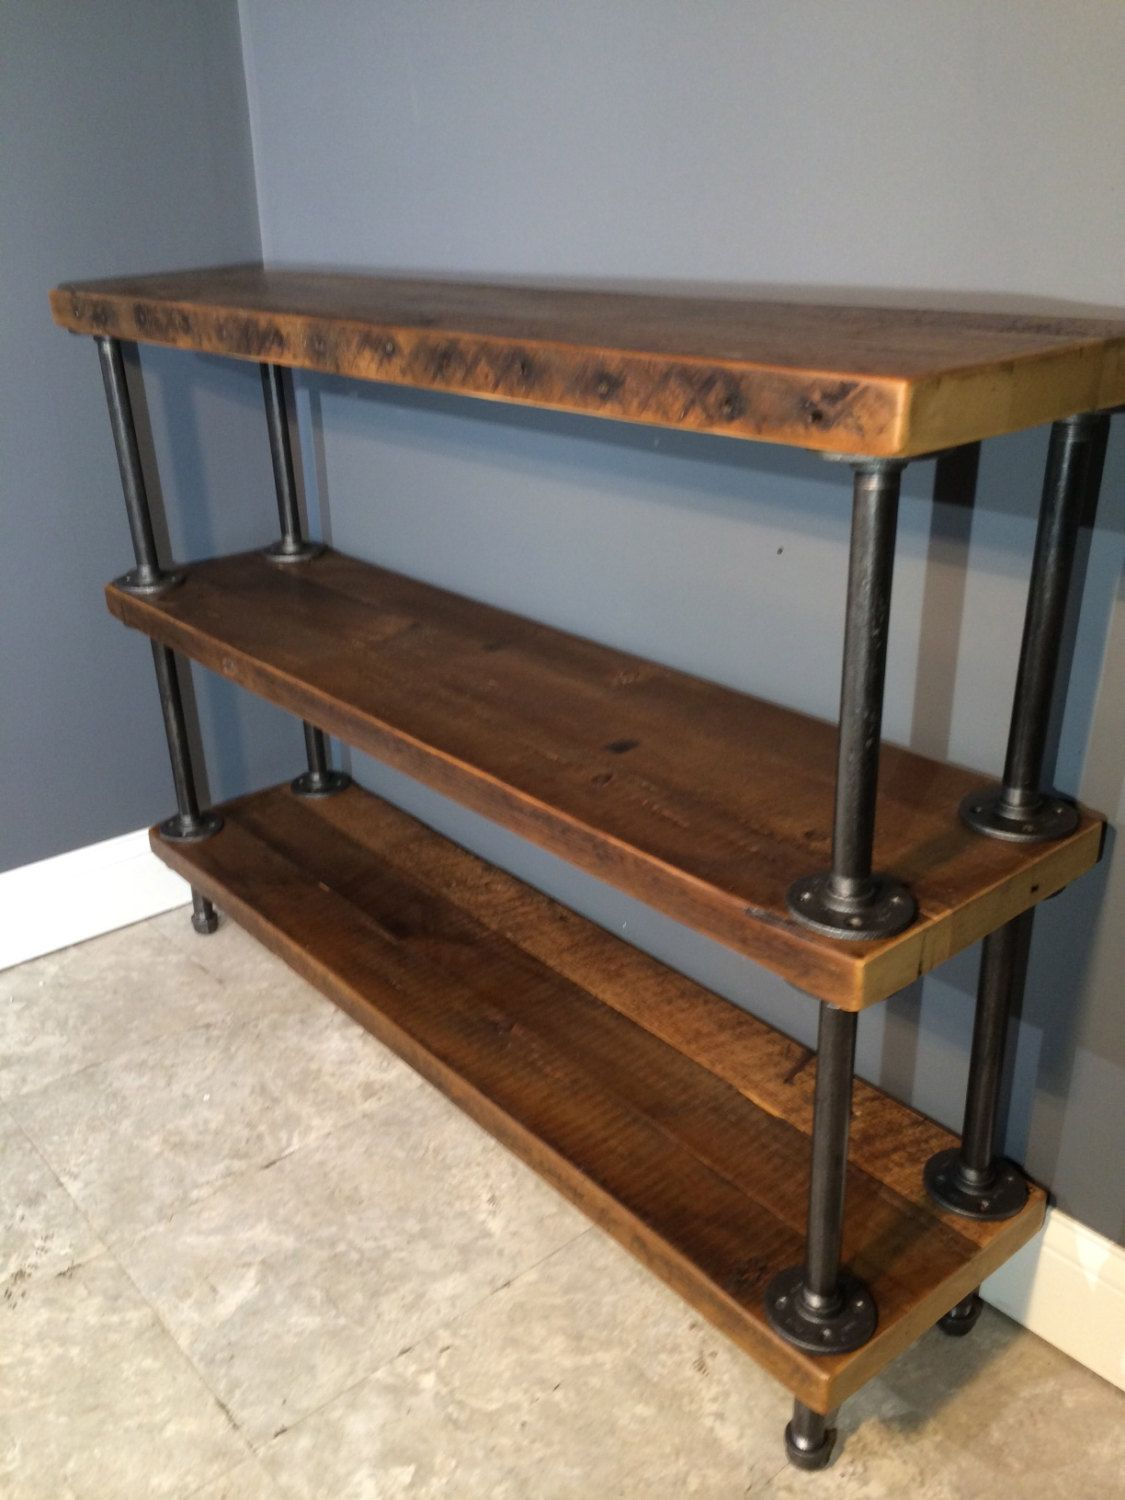 Diy industrial dining room table - Step By Step For Replicating Industrial Table Nesting Tables And Desks Pinterest More Industrial Table And Industrial Ideas